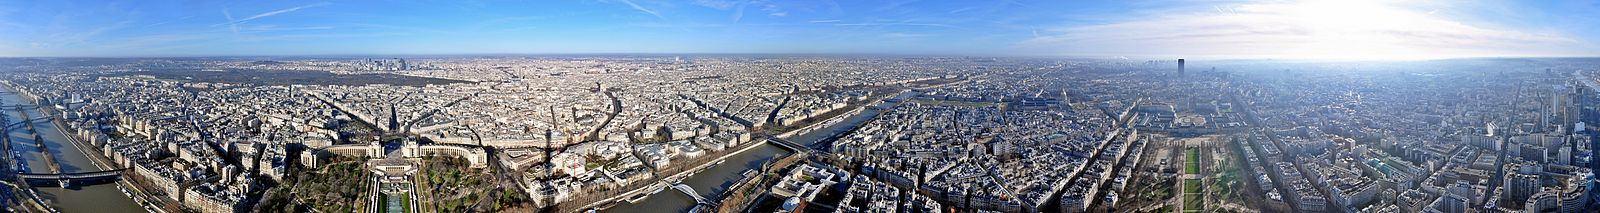 Panorama of Paris as seen from the Eiffel Tower in a full 360-degree view (river flowing from north-east to south-west, right to left)